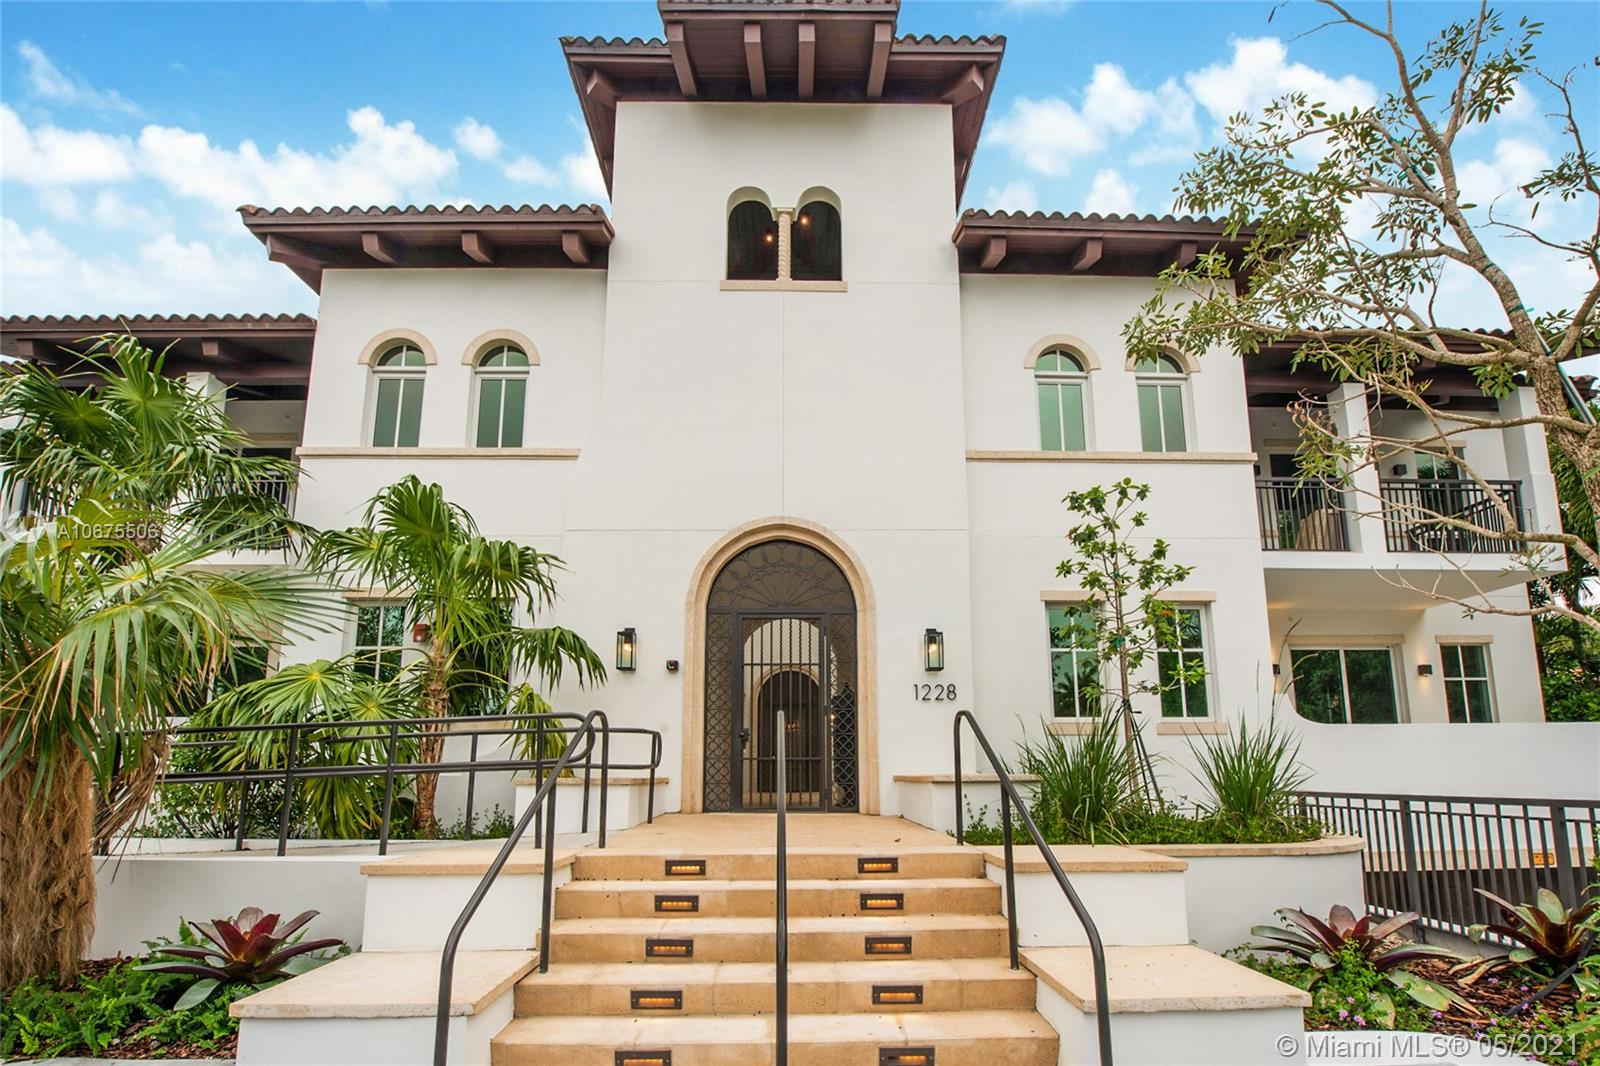 Be one of the fortunate few to live next to the iconic Biltmore Hotel. Enjoy Landmark-resort living in this boutique condo, 11 units on the golf course. Only condo of its kind in an established single-family neighborhood. This penthouse flat offers direct golf course views, private elevator, 3 balconies, & covered terrace w/summer kitchen and 3 covered parking. Timeless beauty; the classic architecture, in keeping with Merrick's vision, is complemented by contemporary interiors, Italian Veneta Cucina kitchen, Wolf/Sub Zero appliances. Enjoy the residents' spa and courtyard, deck & tall privacy hedge.   LA incl. covered Summer kitchen and TOTAL includes balcony.